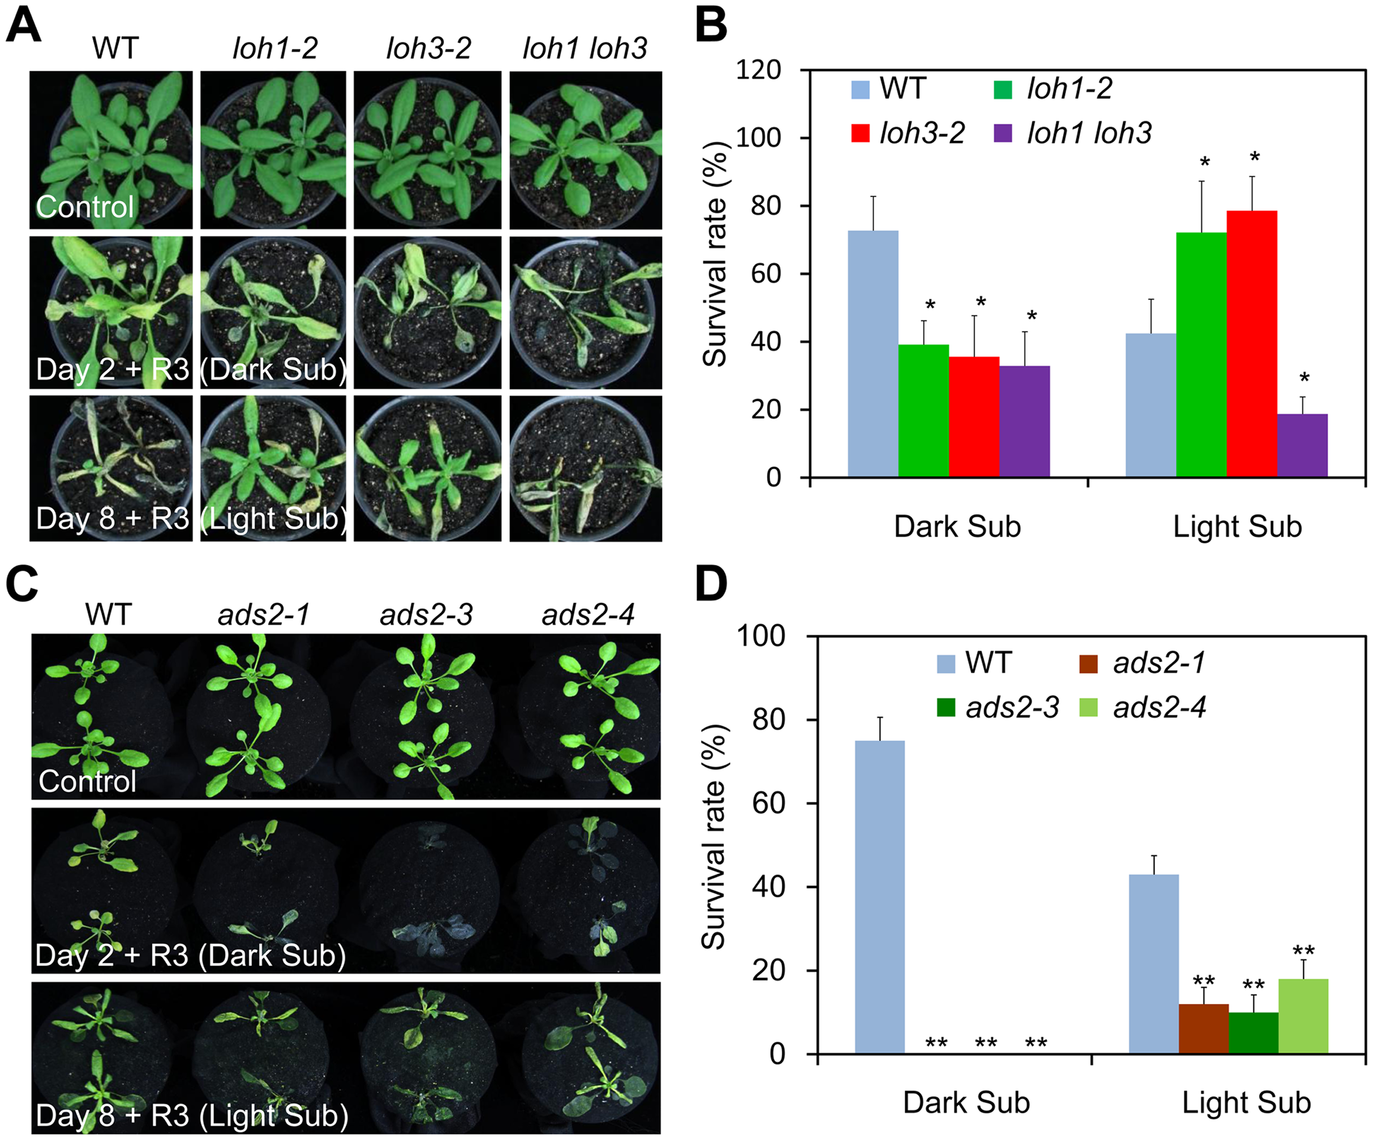 The <i>loh1 loh3</i> knockdown double mutant and <i>ads2</i> mutants displayed attenuated tolerance to both dark and light submergence.